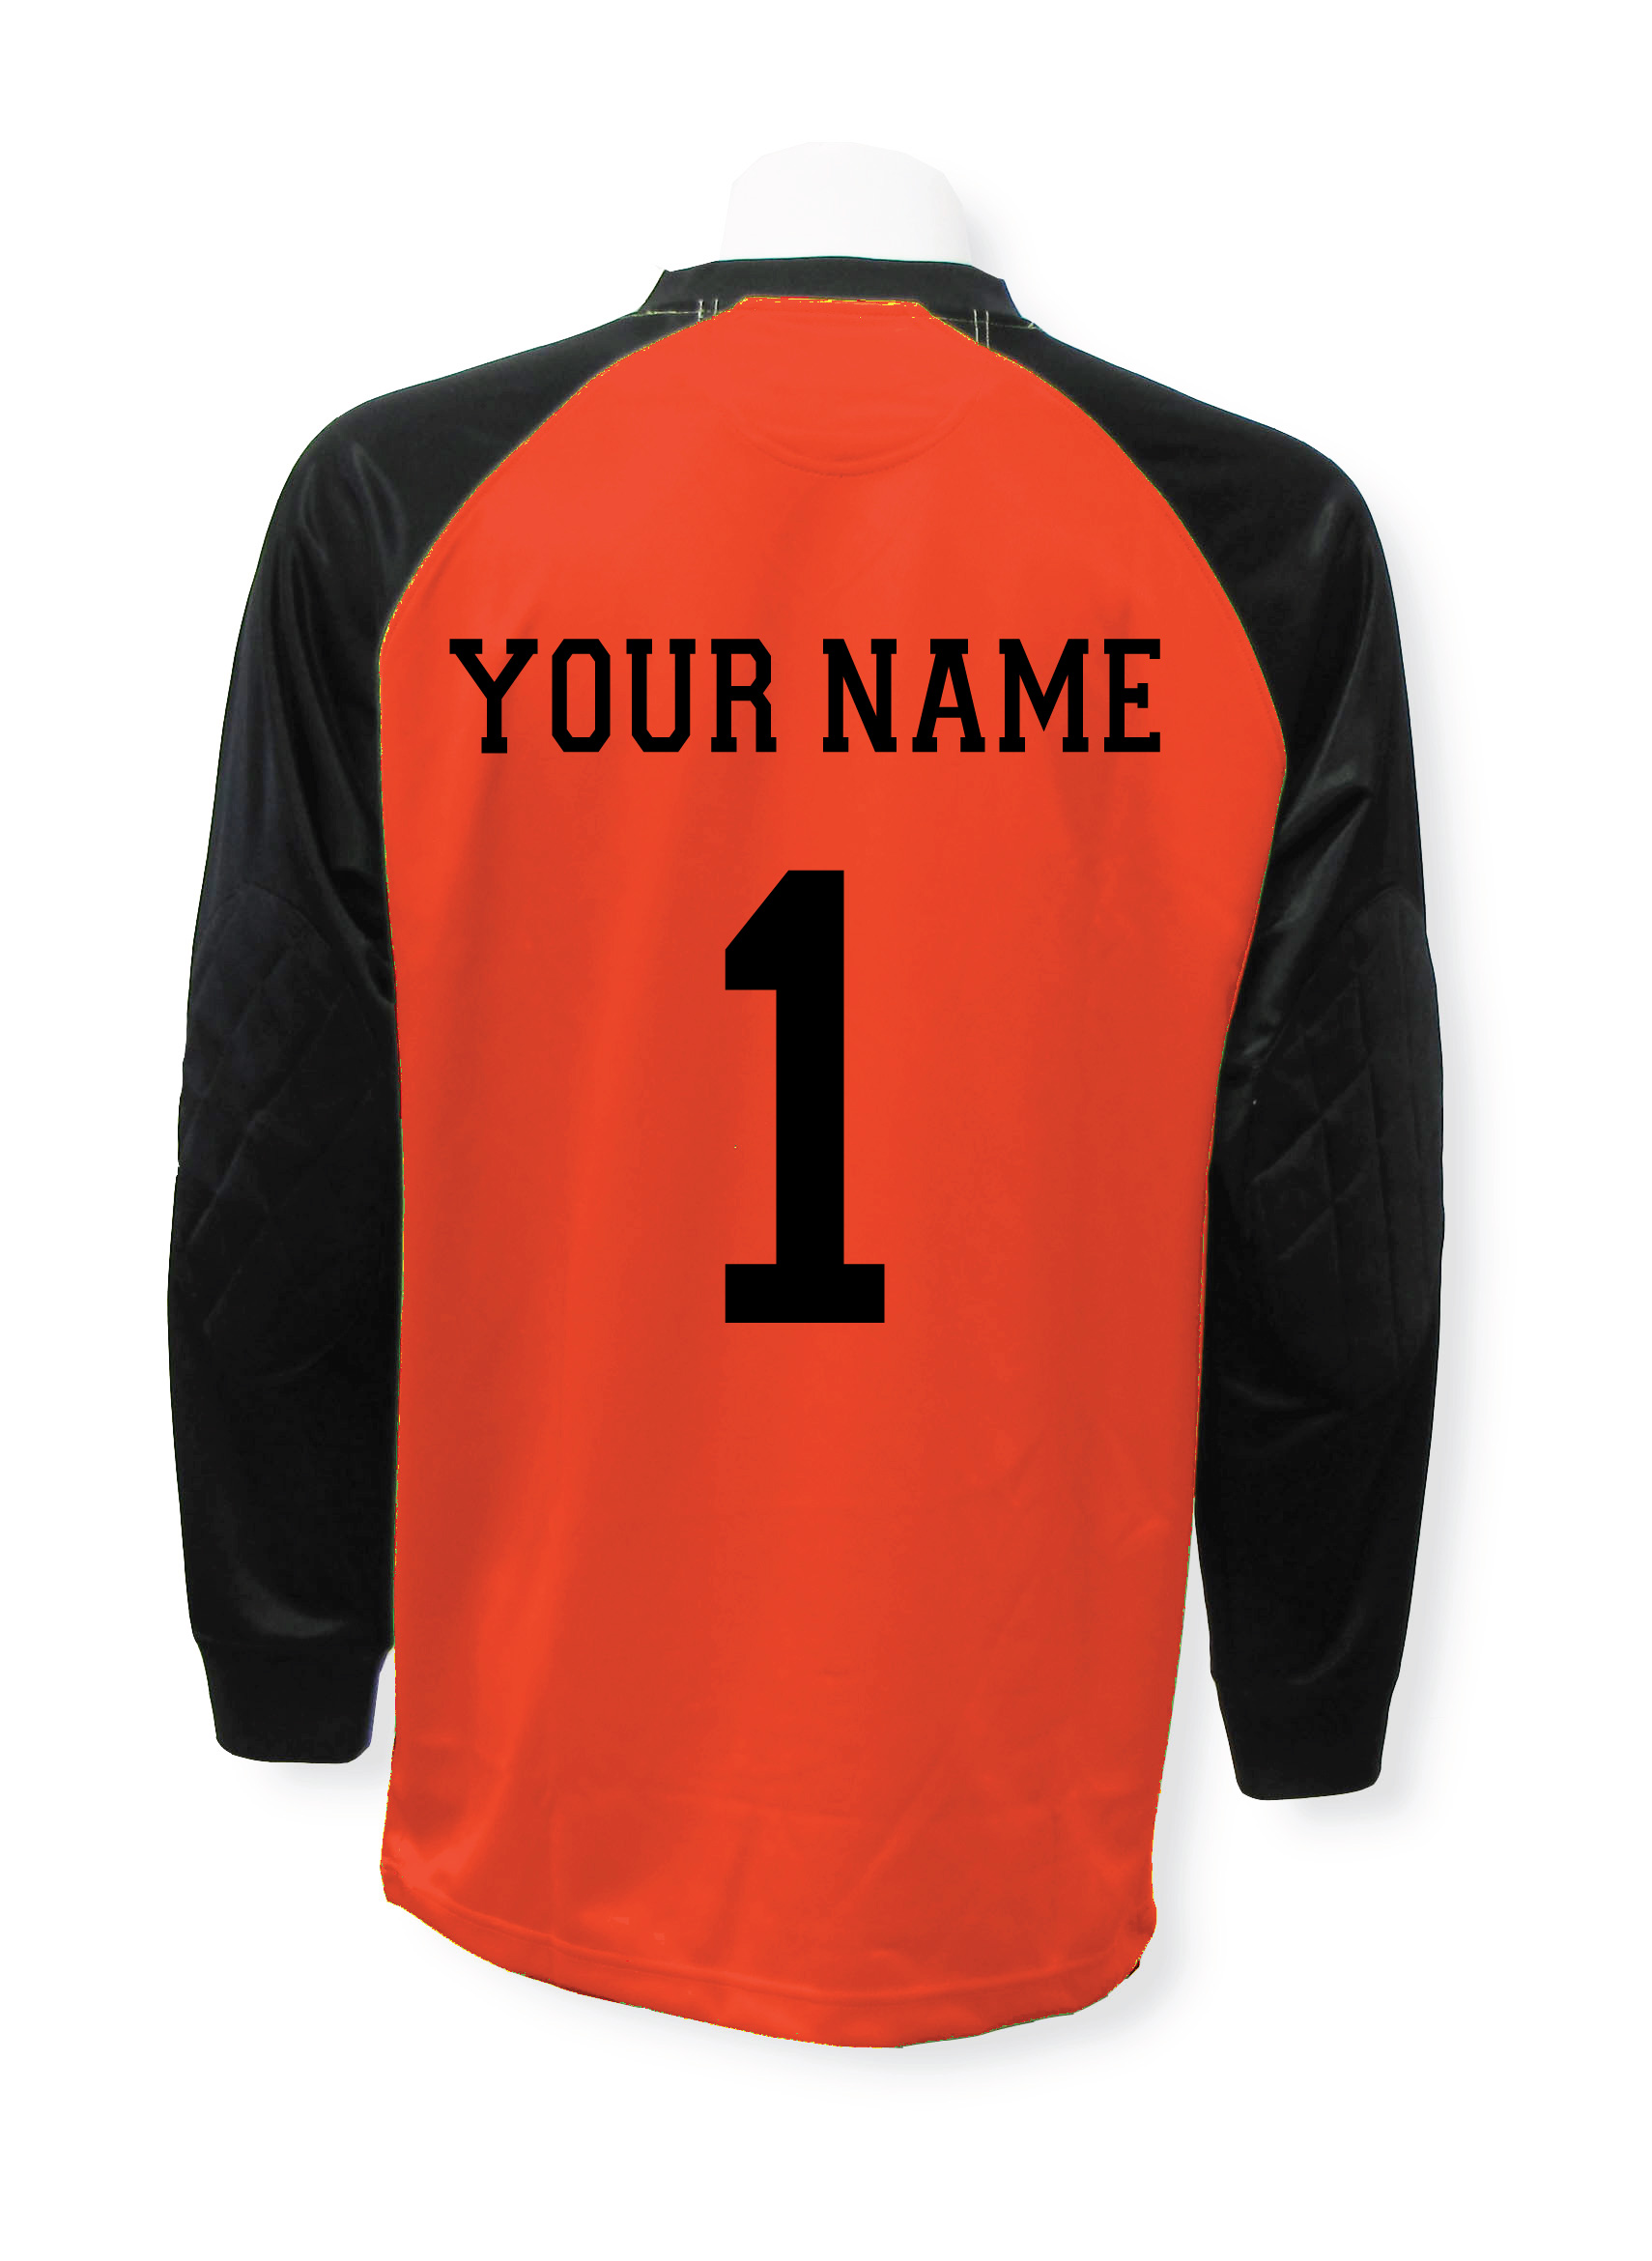 Personalized soccer goalie jersey with name and number by Code Four Athletics